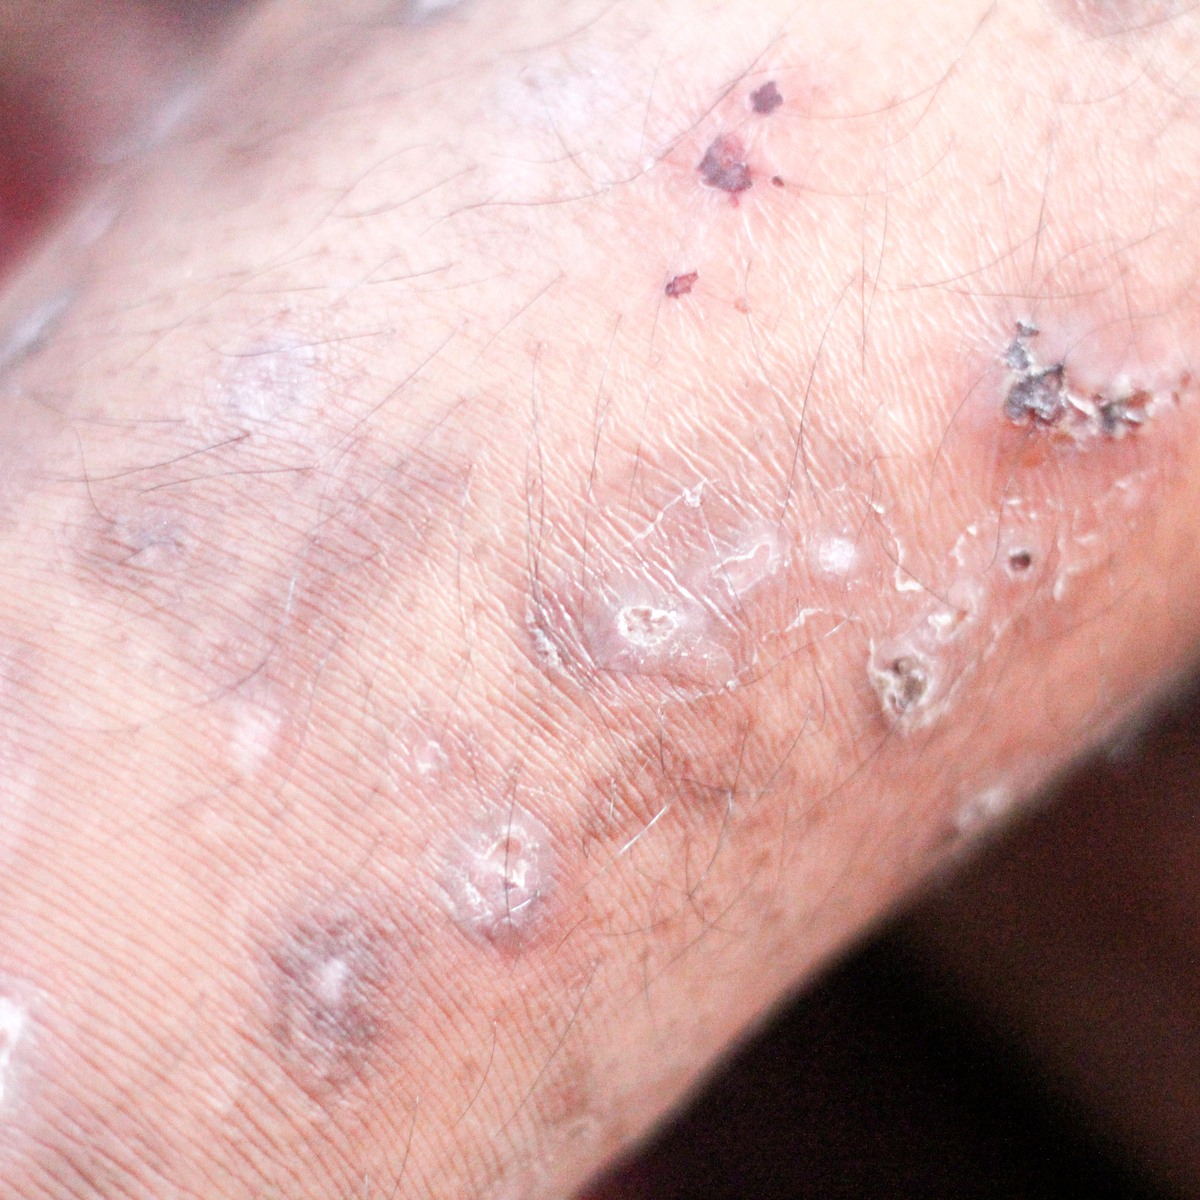 Acarodermatitis